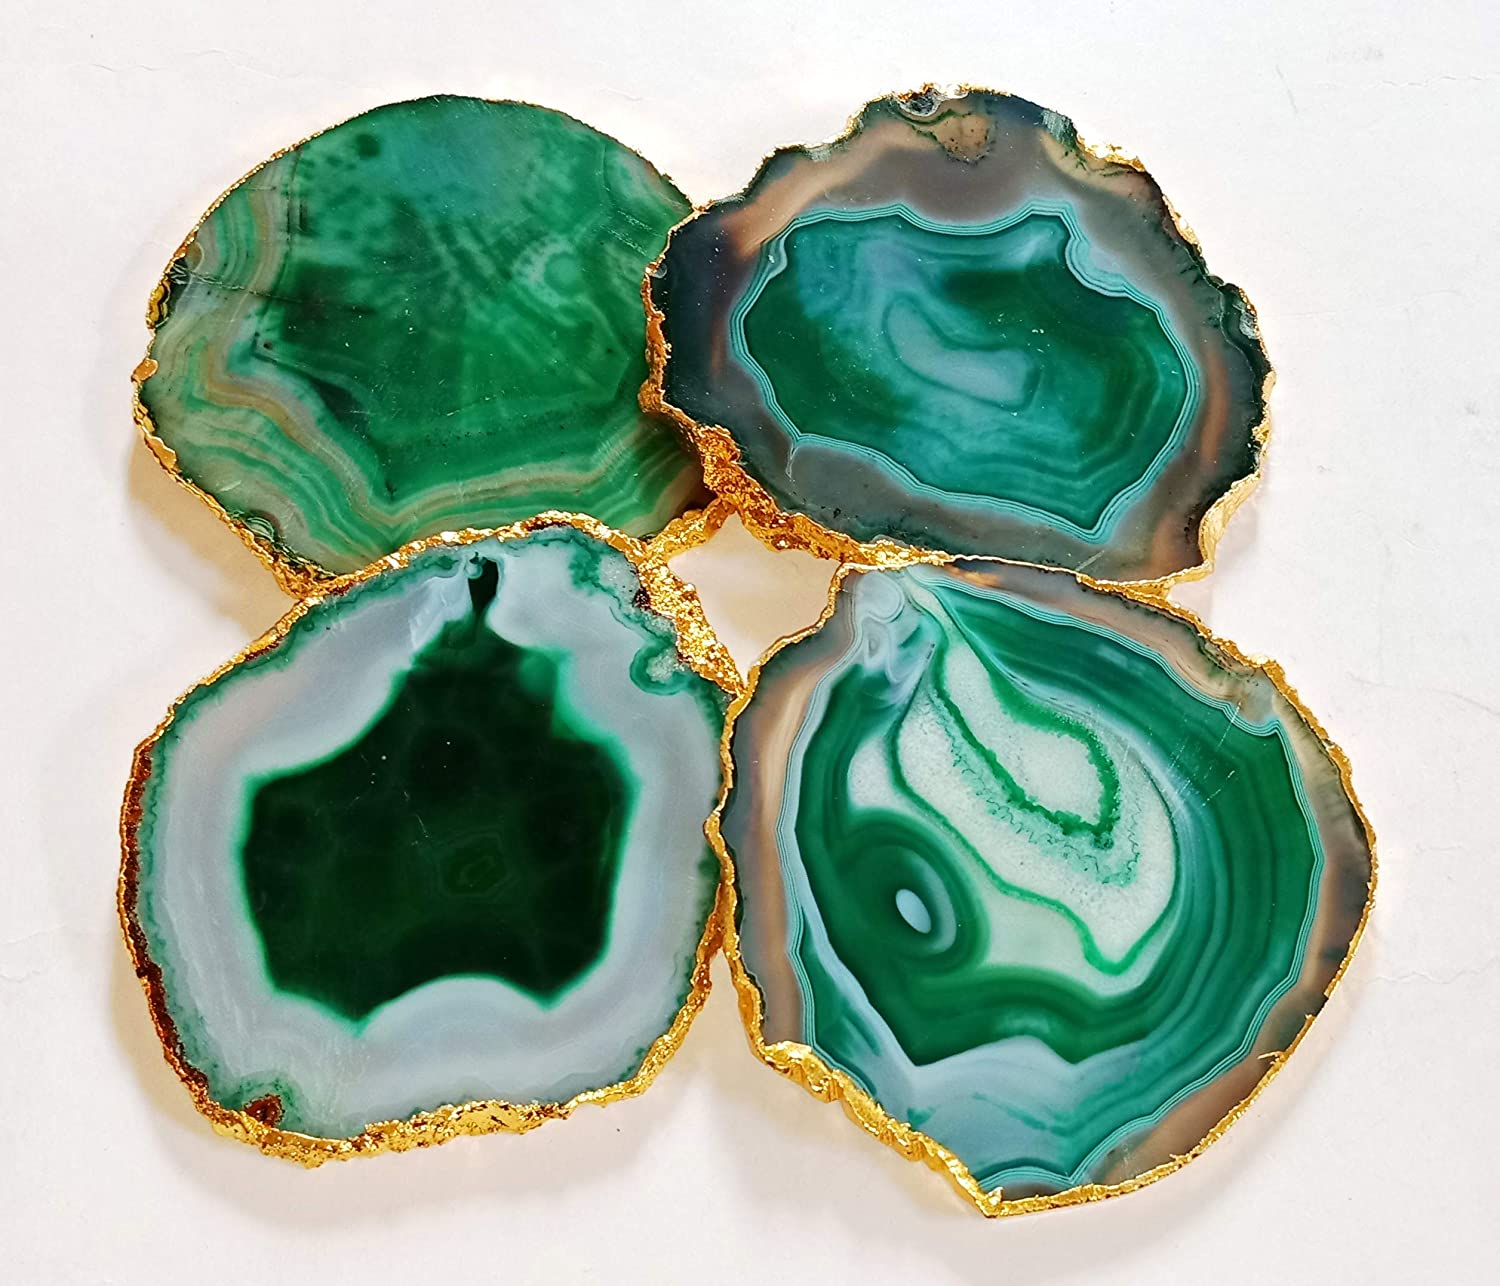 Coasters Green Agate Coasters Set With Gold Electroplated Stone Coasters Quartz Coasters Drink Ware Coasters Set Home Decor 12 Green Coasters